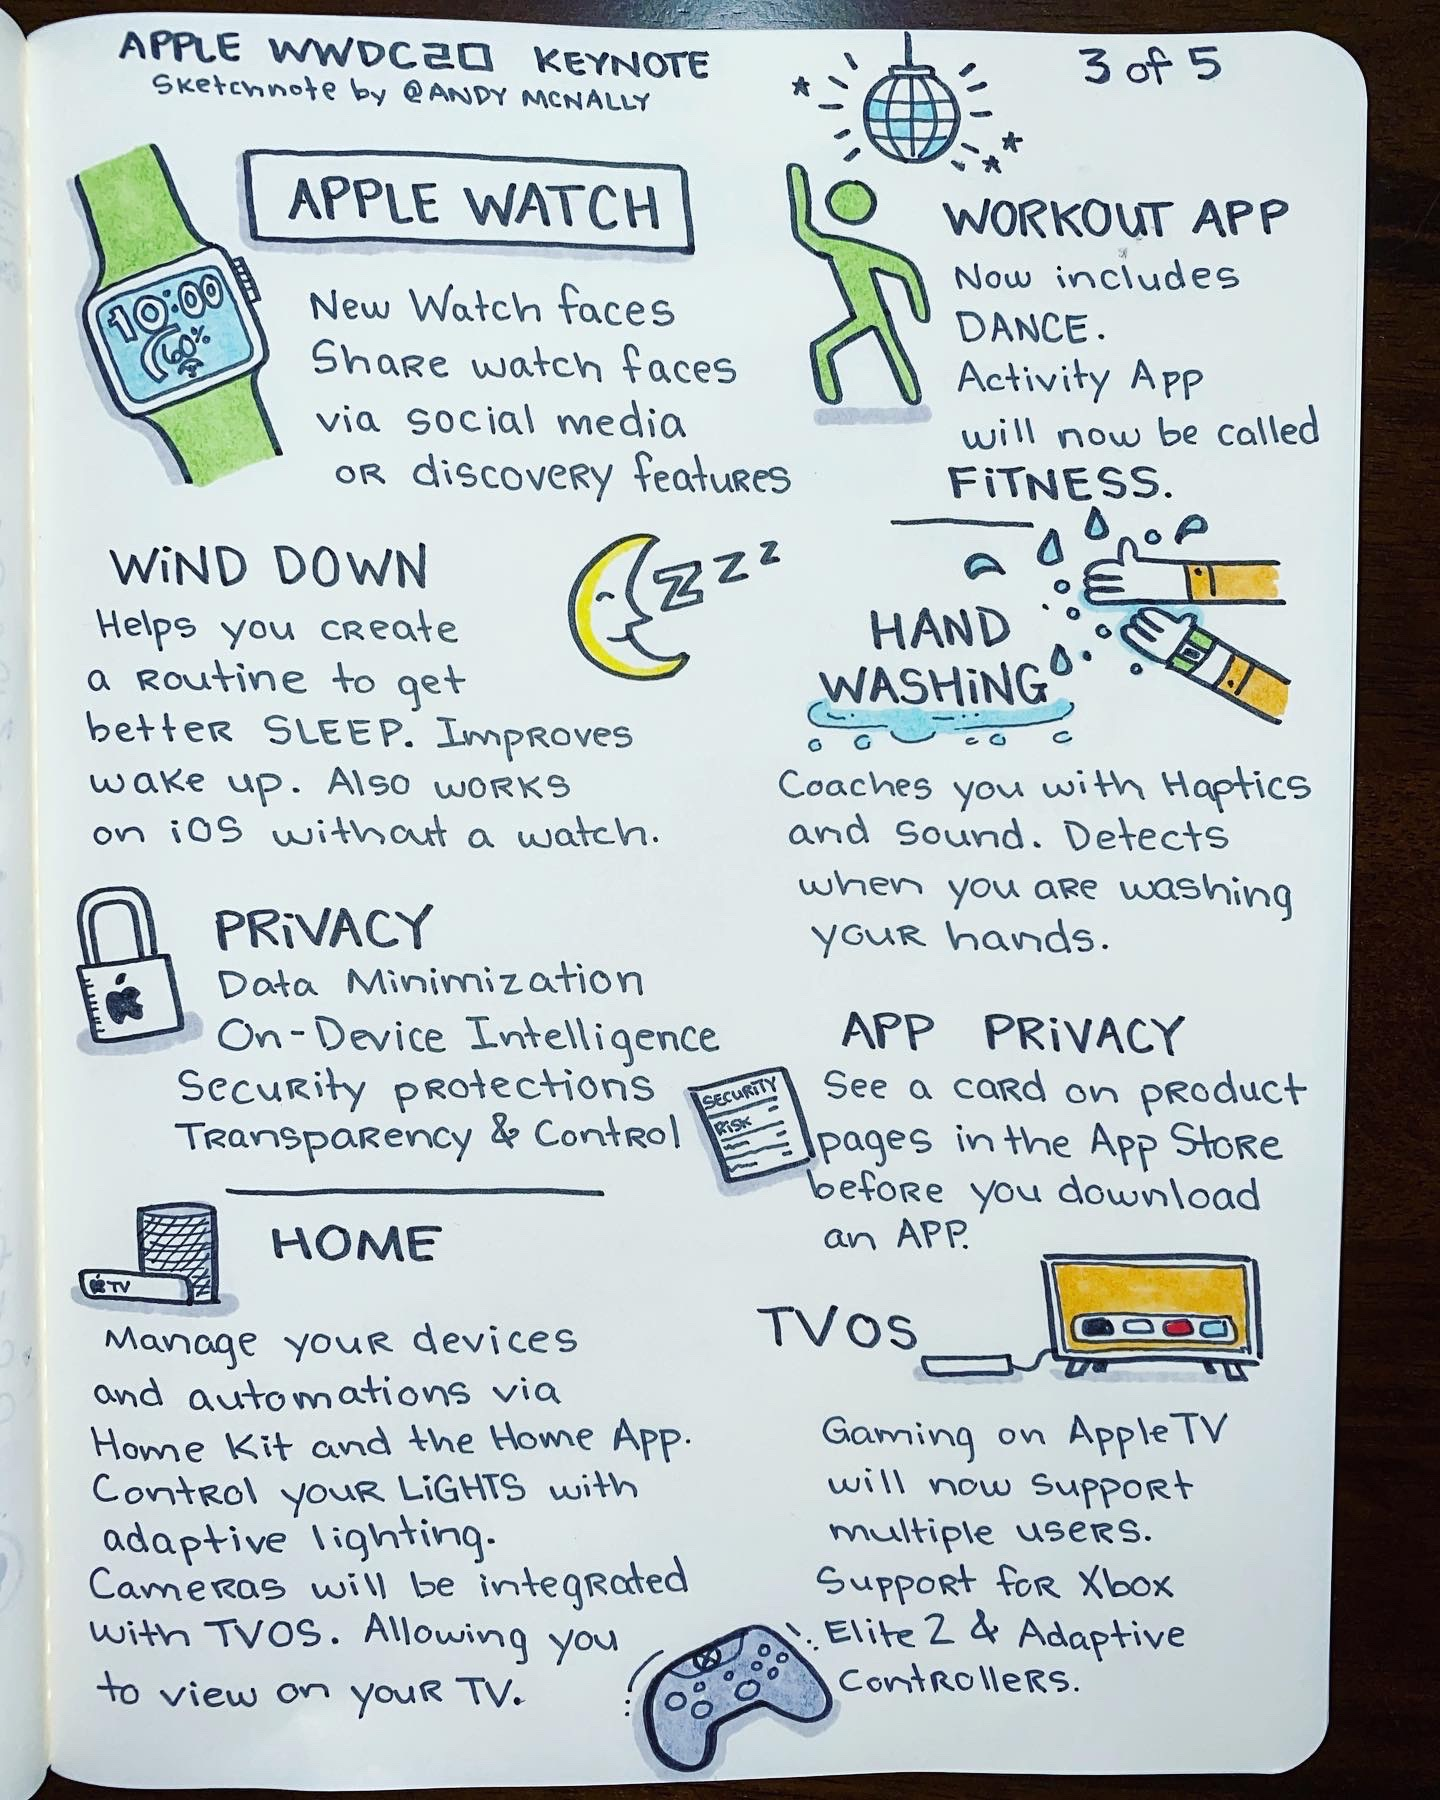 Apple WWDC 2020 Keynote drawing 3 of 5